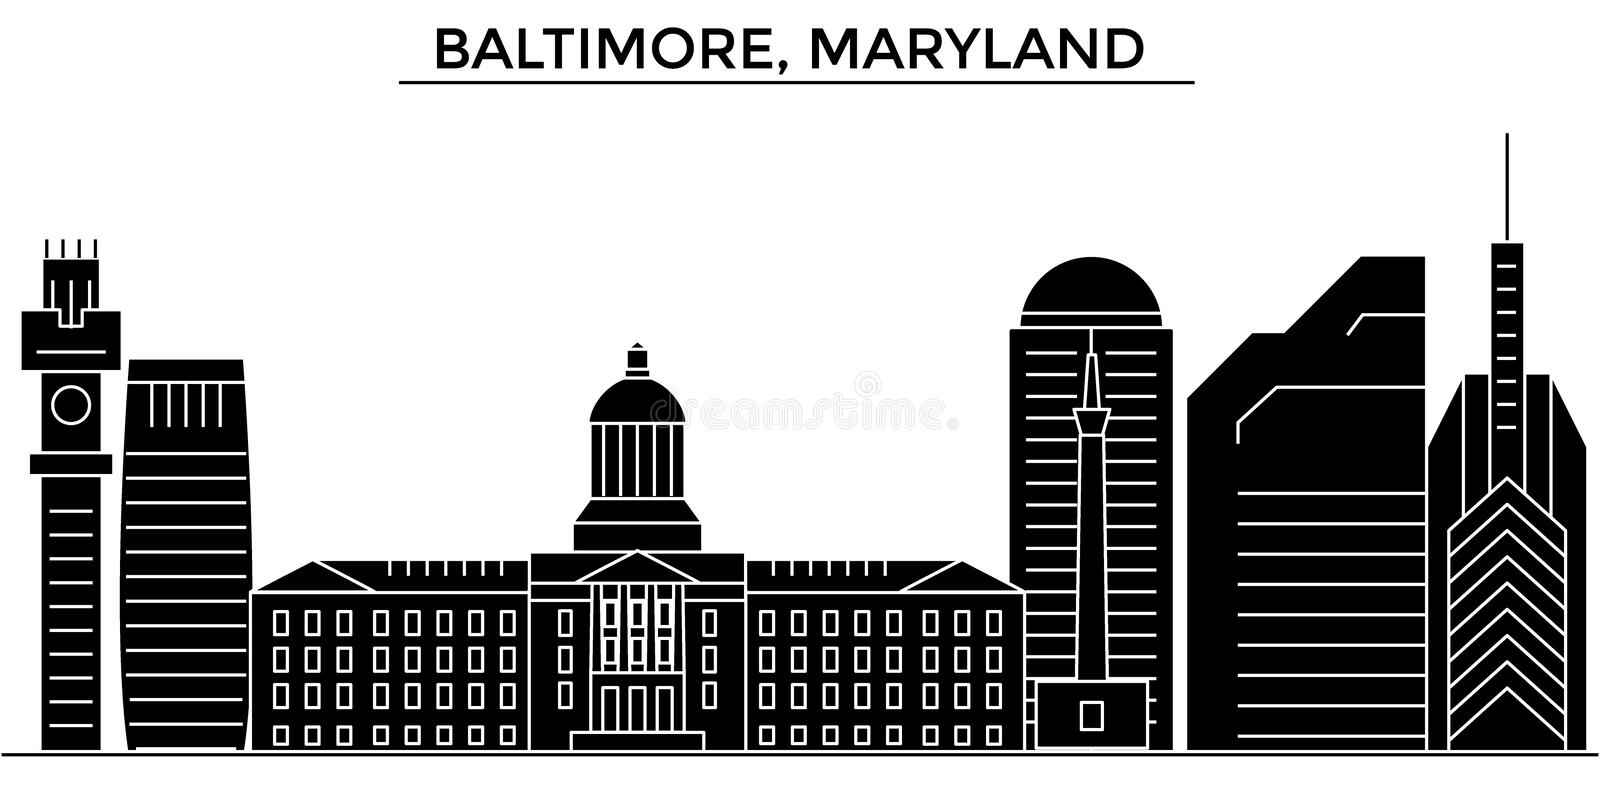 Usa, Baltimore, Maryland architecture vector city skyline, travel cityscape with landmarks, buildings, isolated sights vector illustration